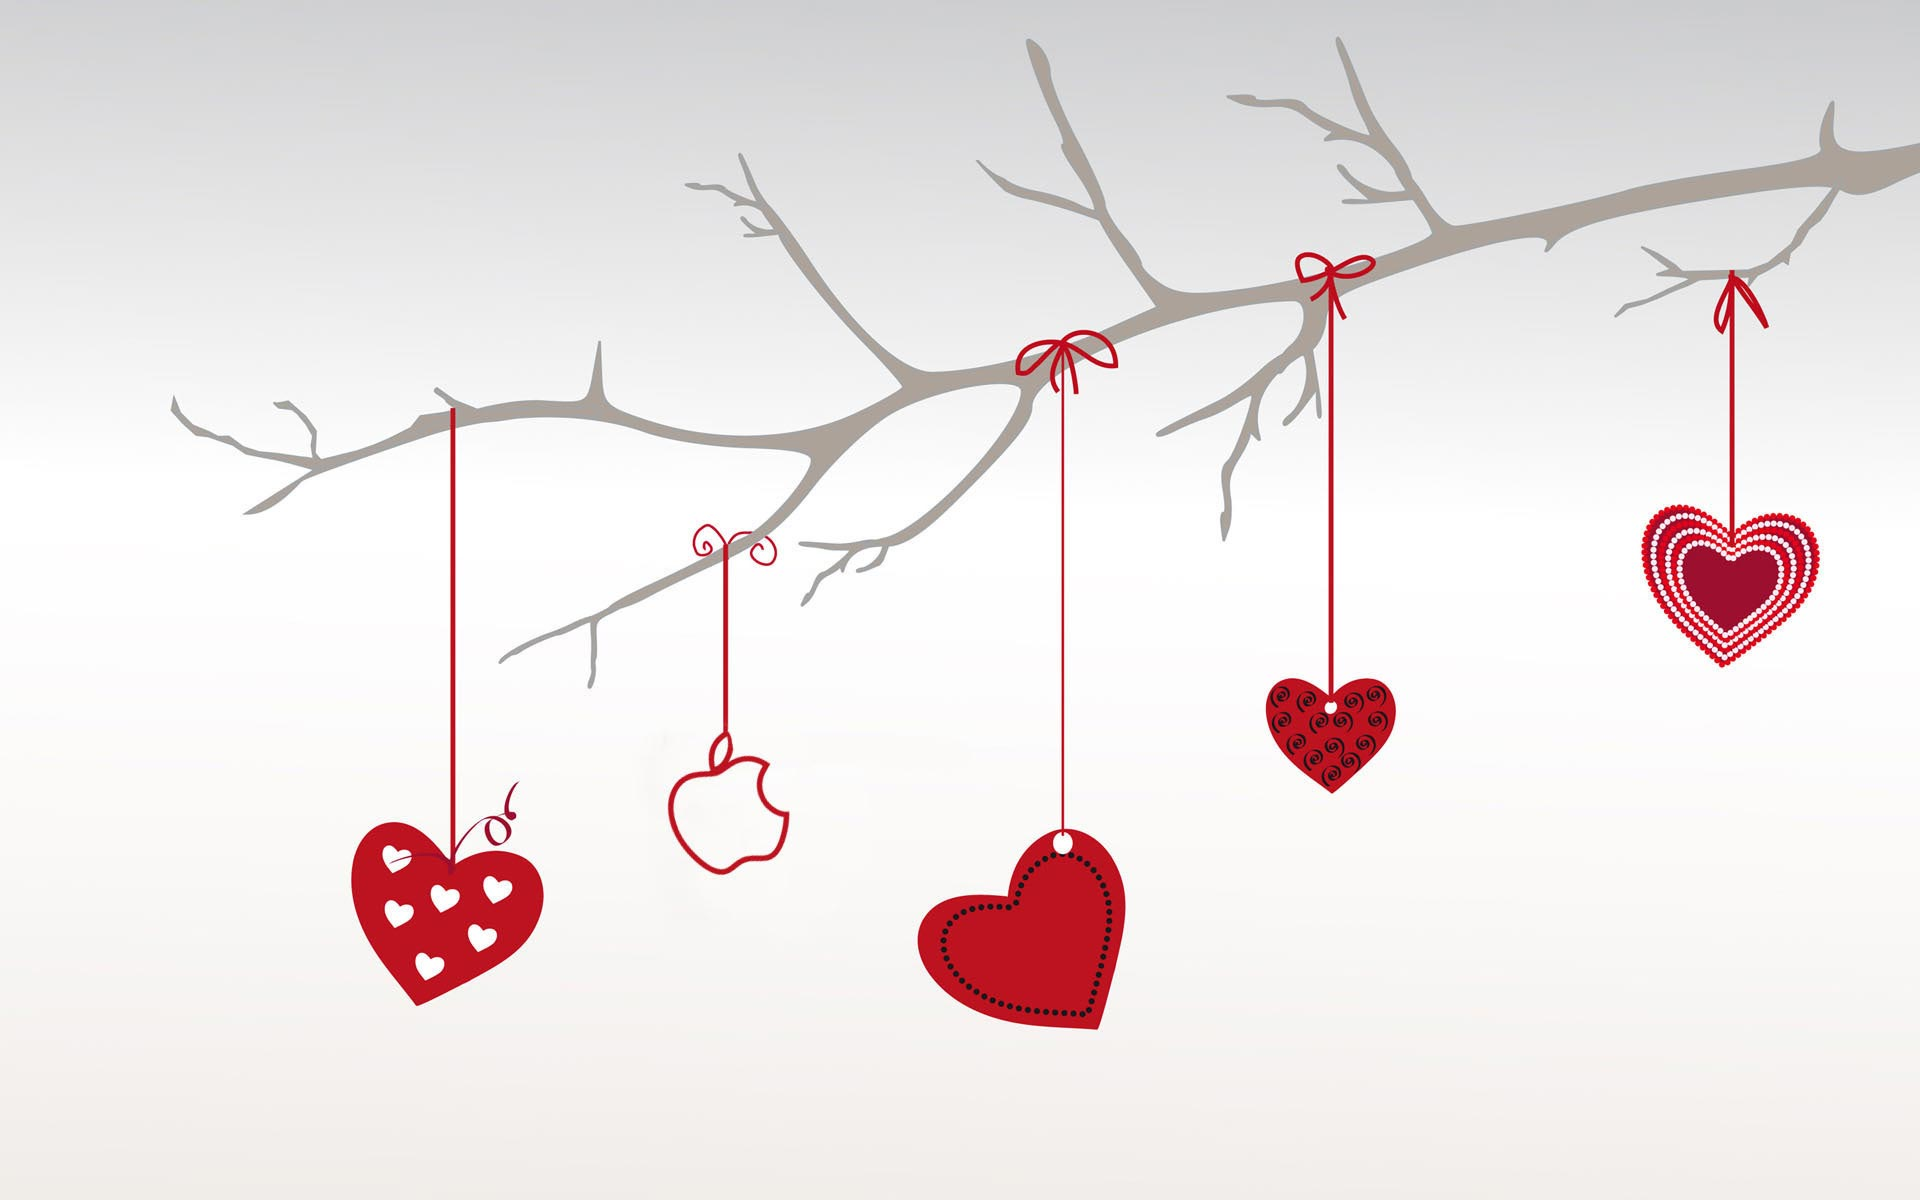 valentines-day-images-10